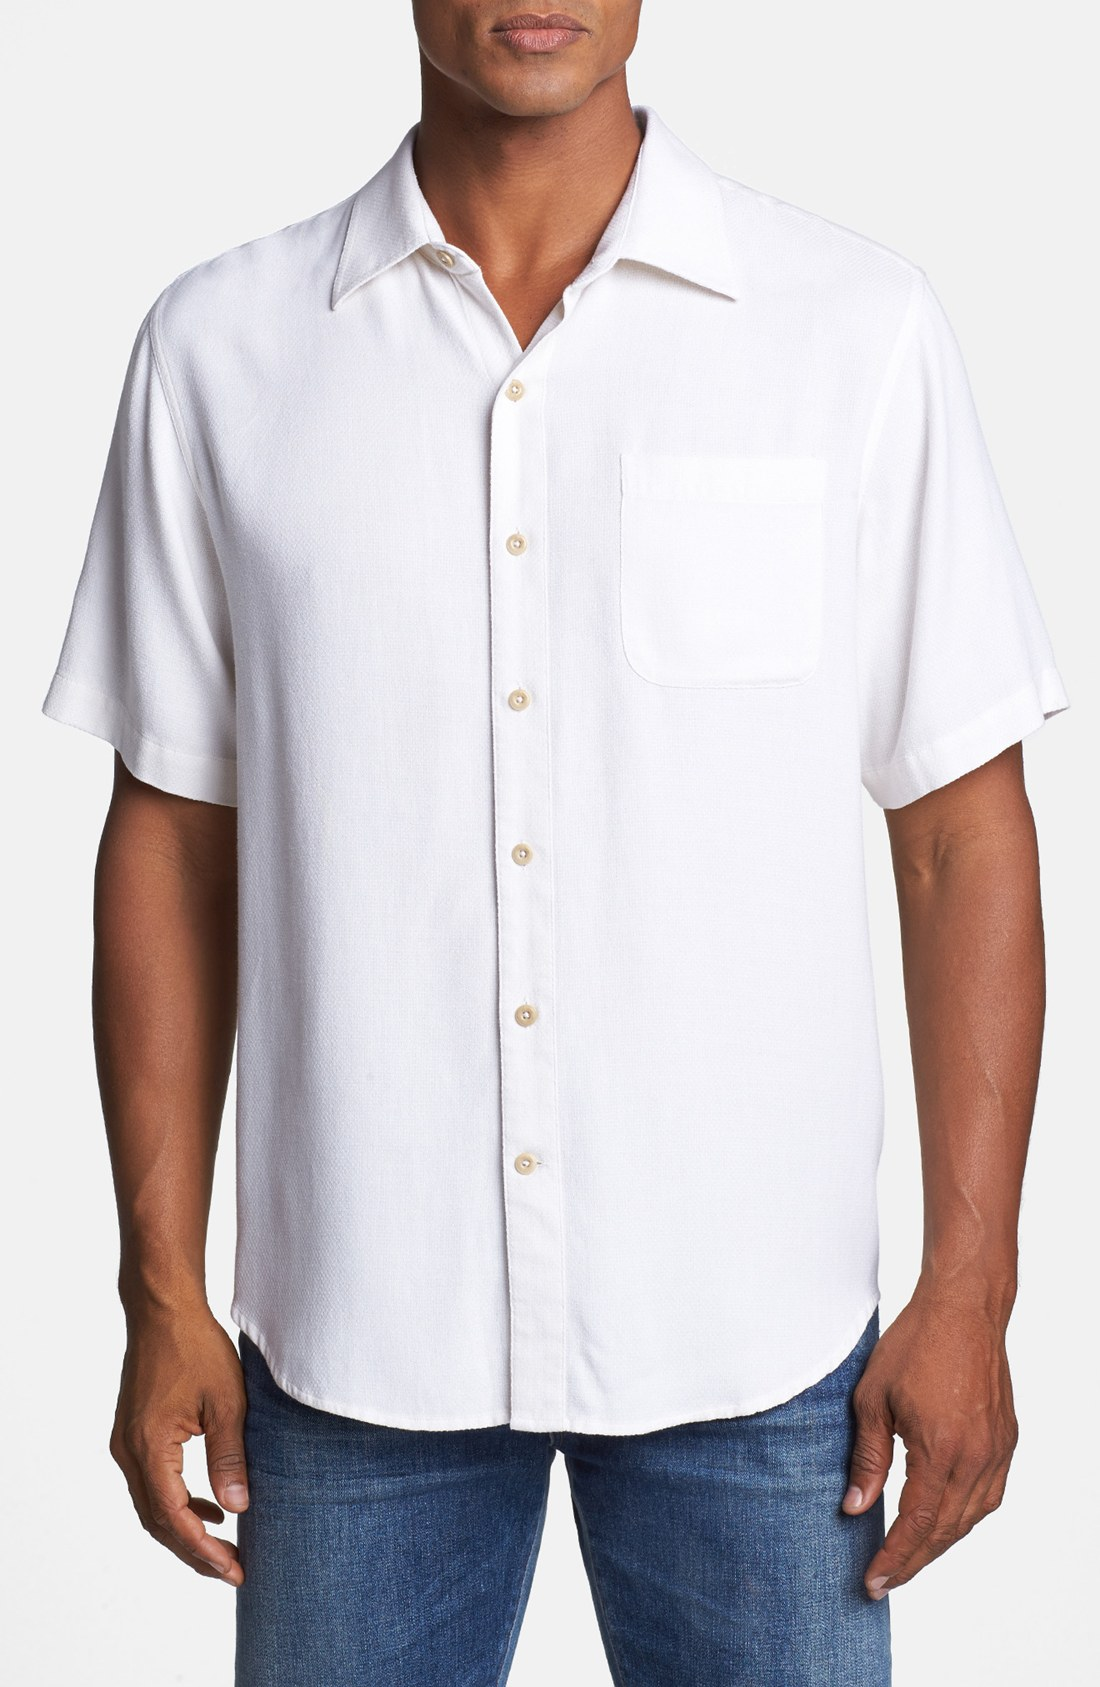 white silk shirts for men